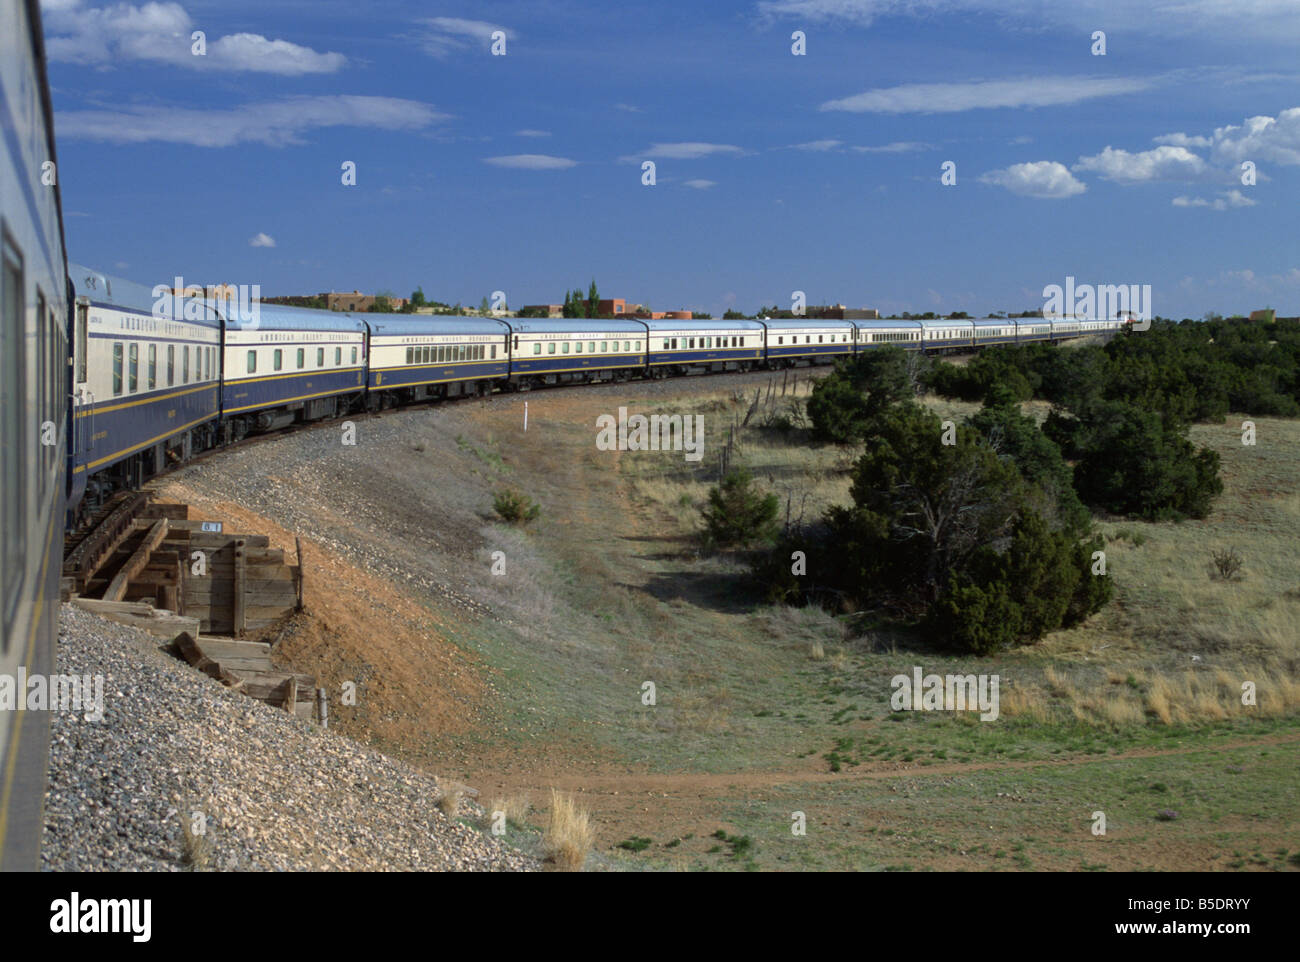 View from open doorway on the American Orient Express train, travelling in the Southwest U.S., USA, North America - Stock Image